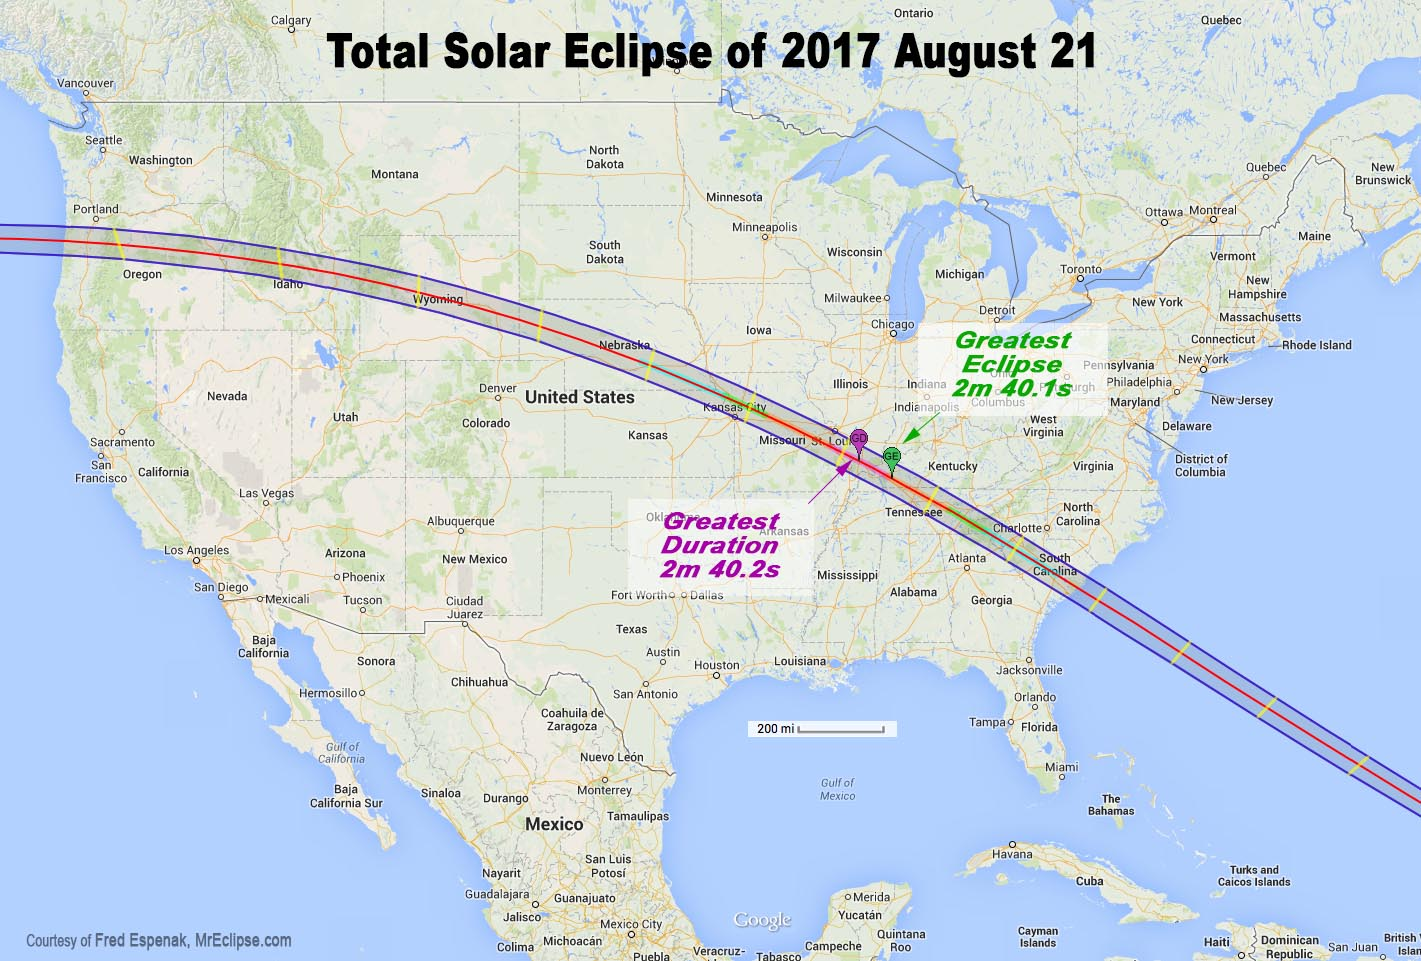 'Great American Total Solar Eclipse' of August 2017